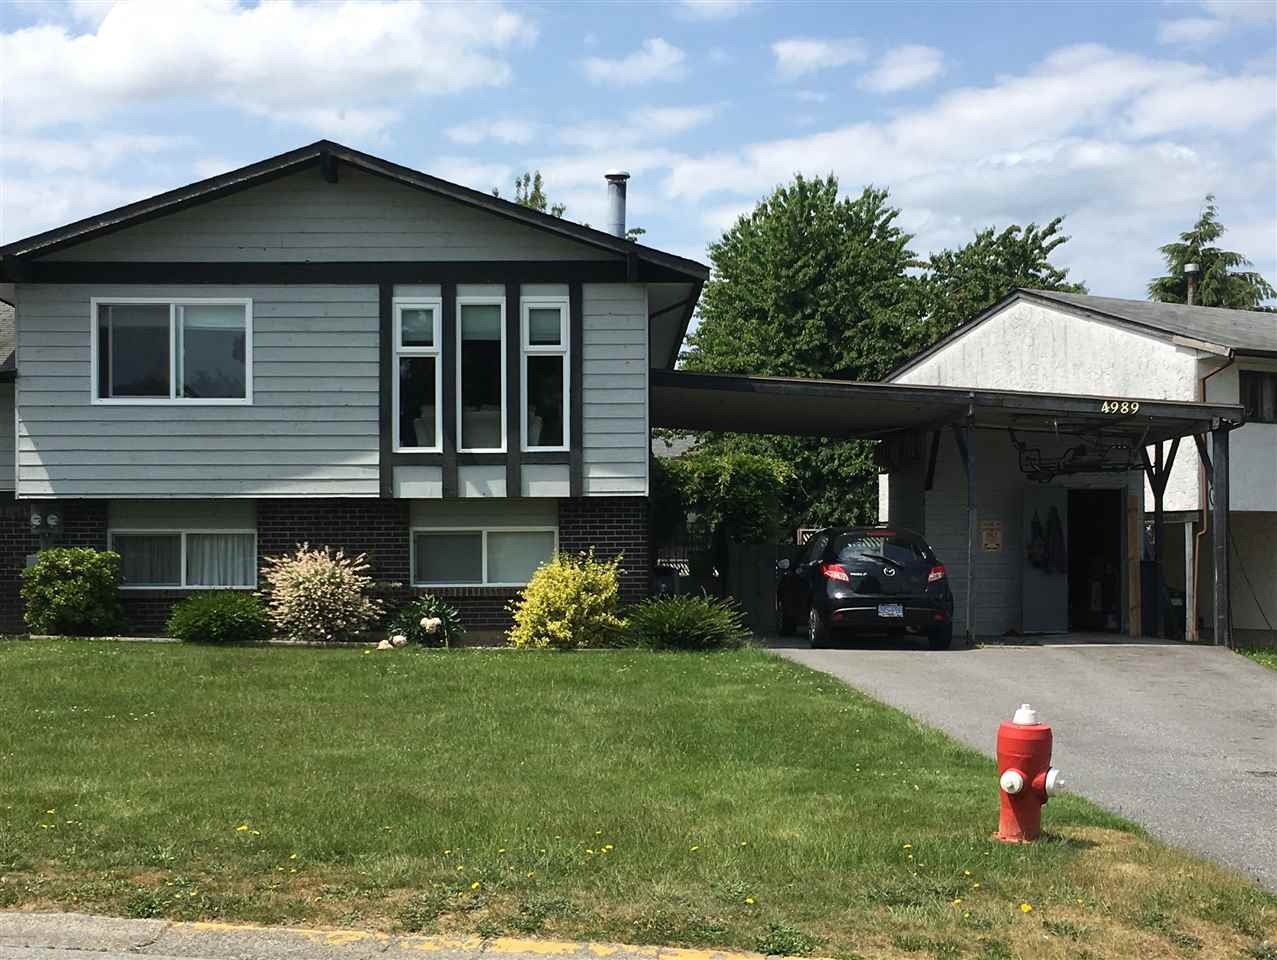 Main Photo: 4989 207A Street in Langley: Langley City House 1/2 Duplex for sale : MLS®# R2277301